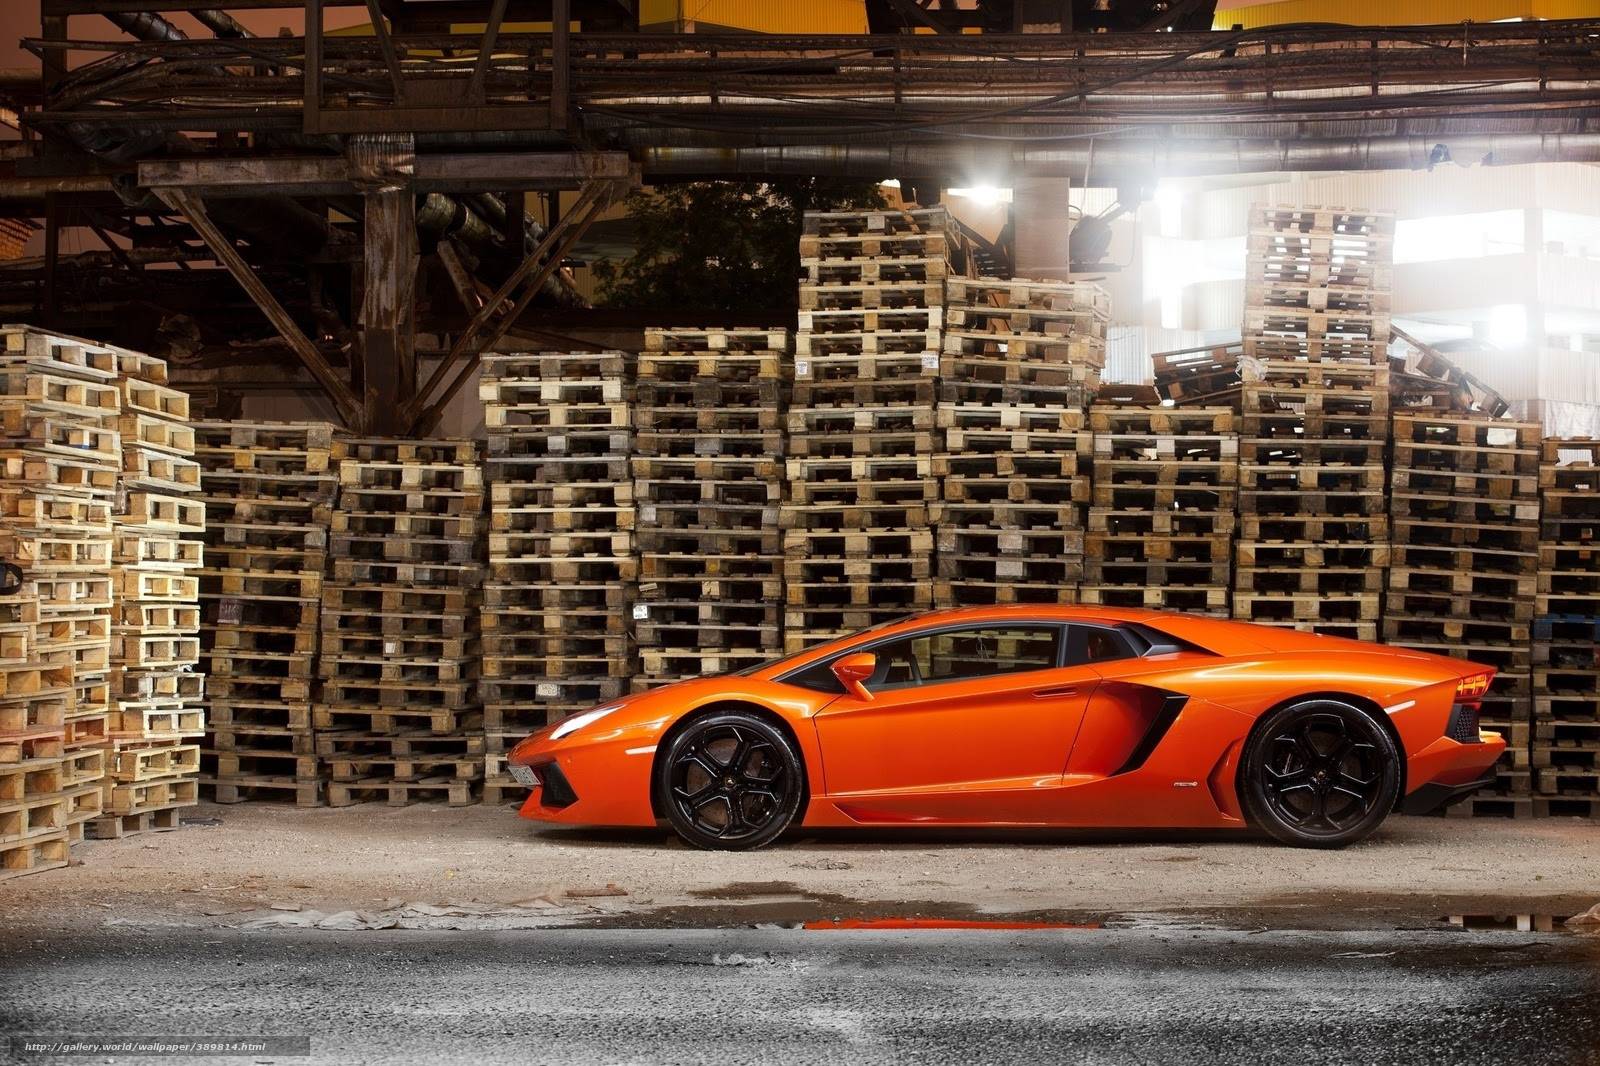 Download Wallpaper Lamborghini Aventador Orange Cars Free Desktop